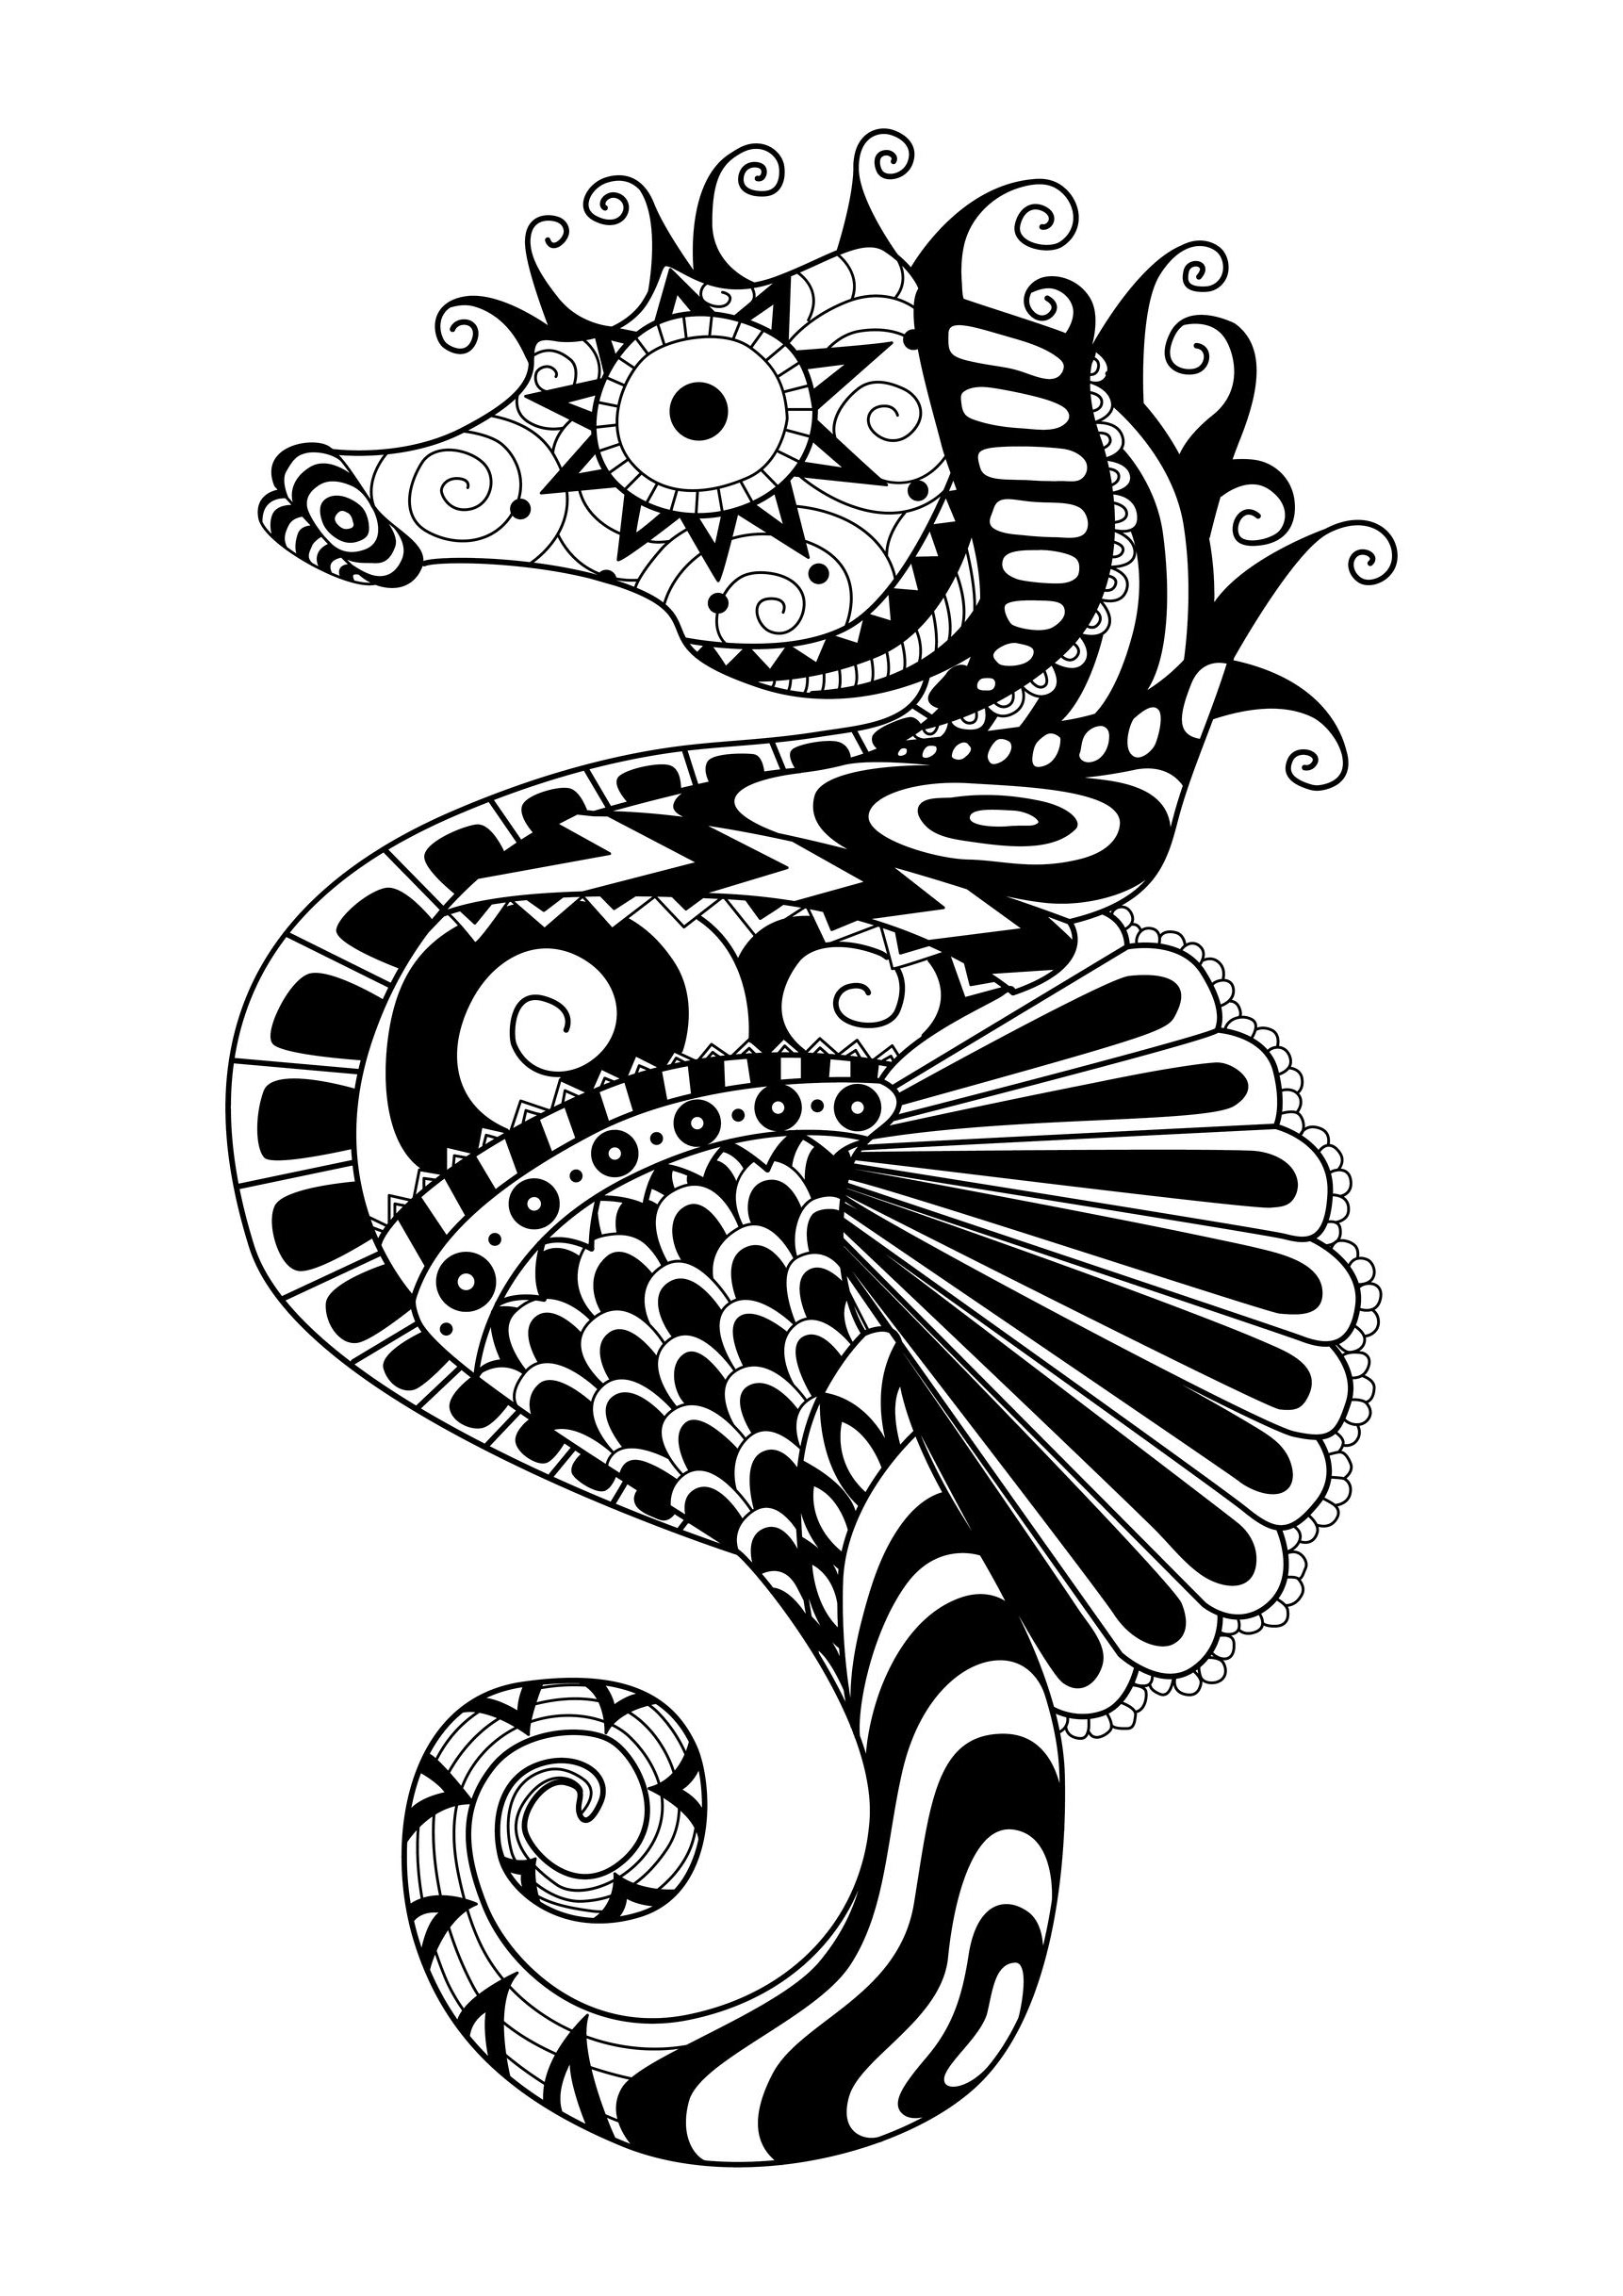 zentangle coloring pages free printable printable zentangle coloring pages free coloring home free zentangle pages printable coloring